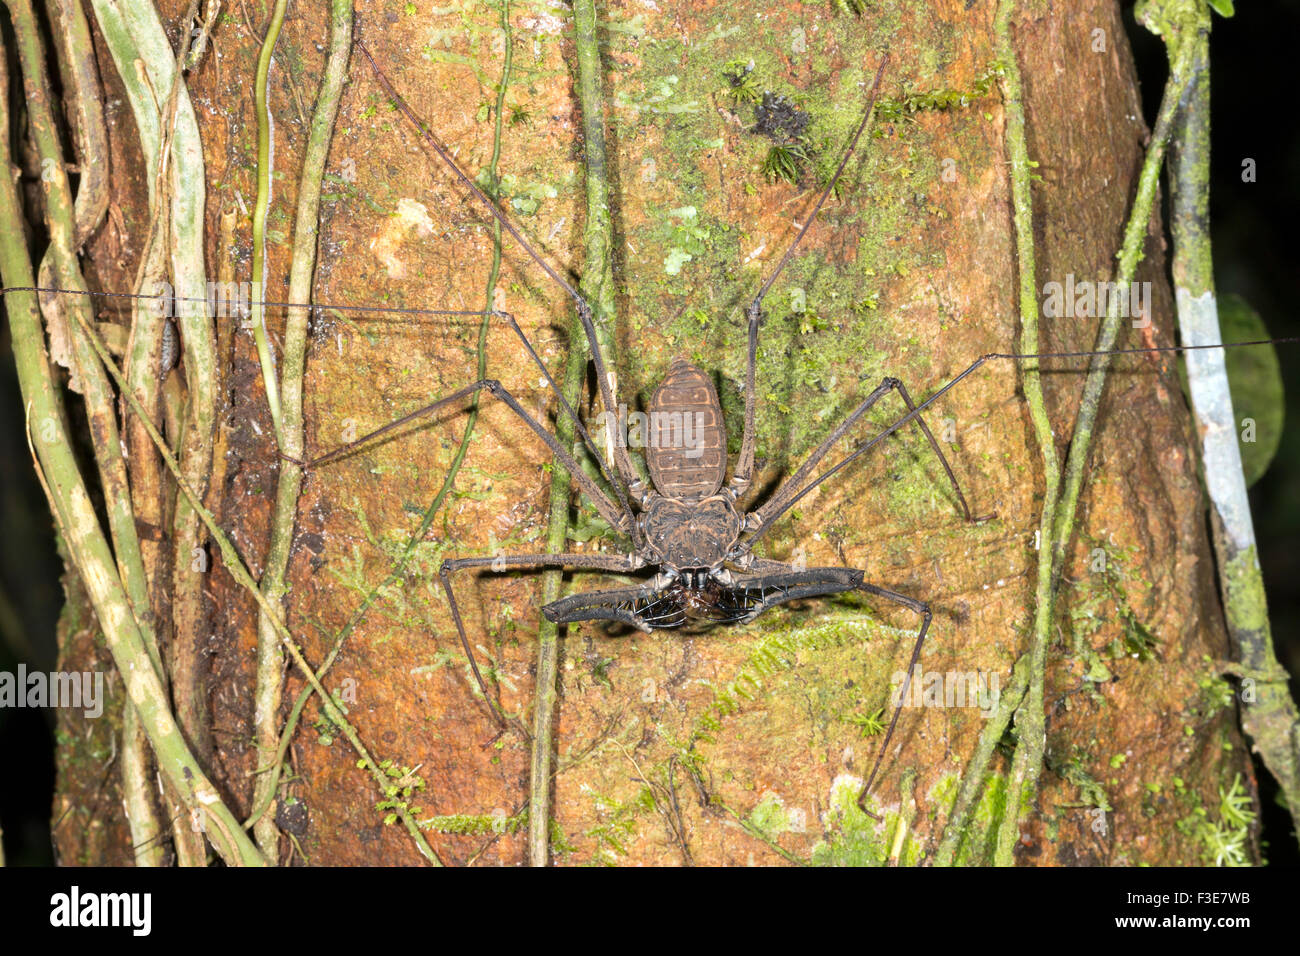 Tailless whipscorpion (Amblypygid) eating a prey item on a rainforest tree trunk in Ecuador - Stock Image